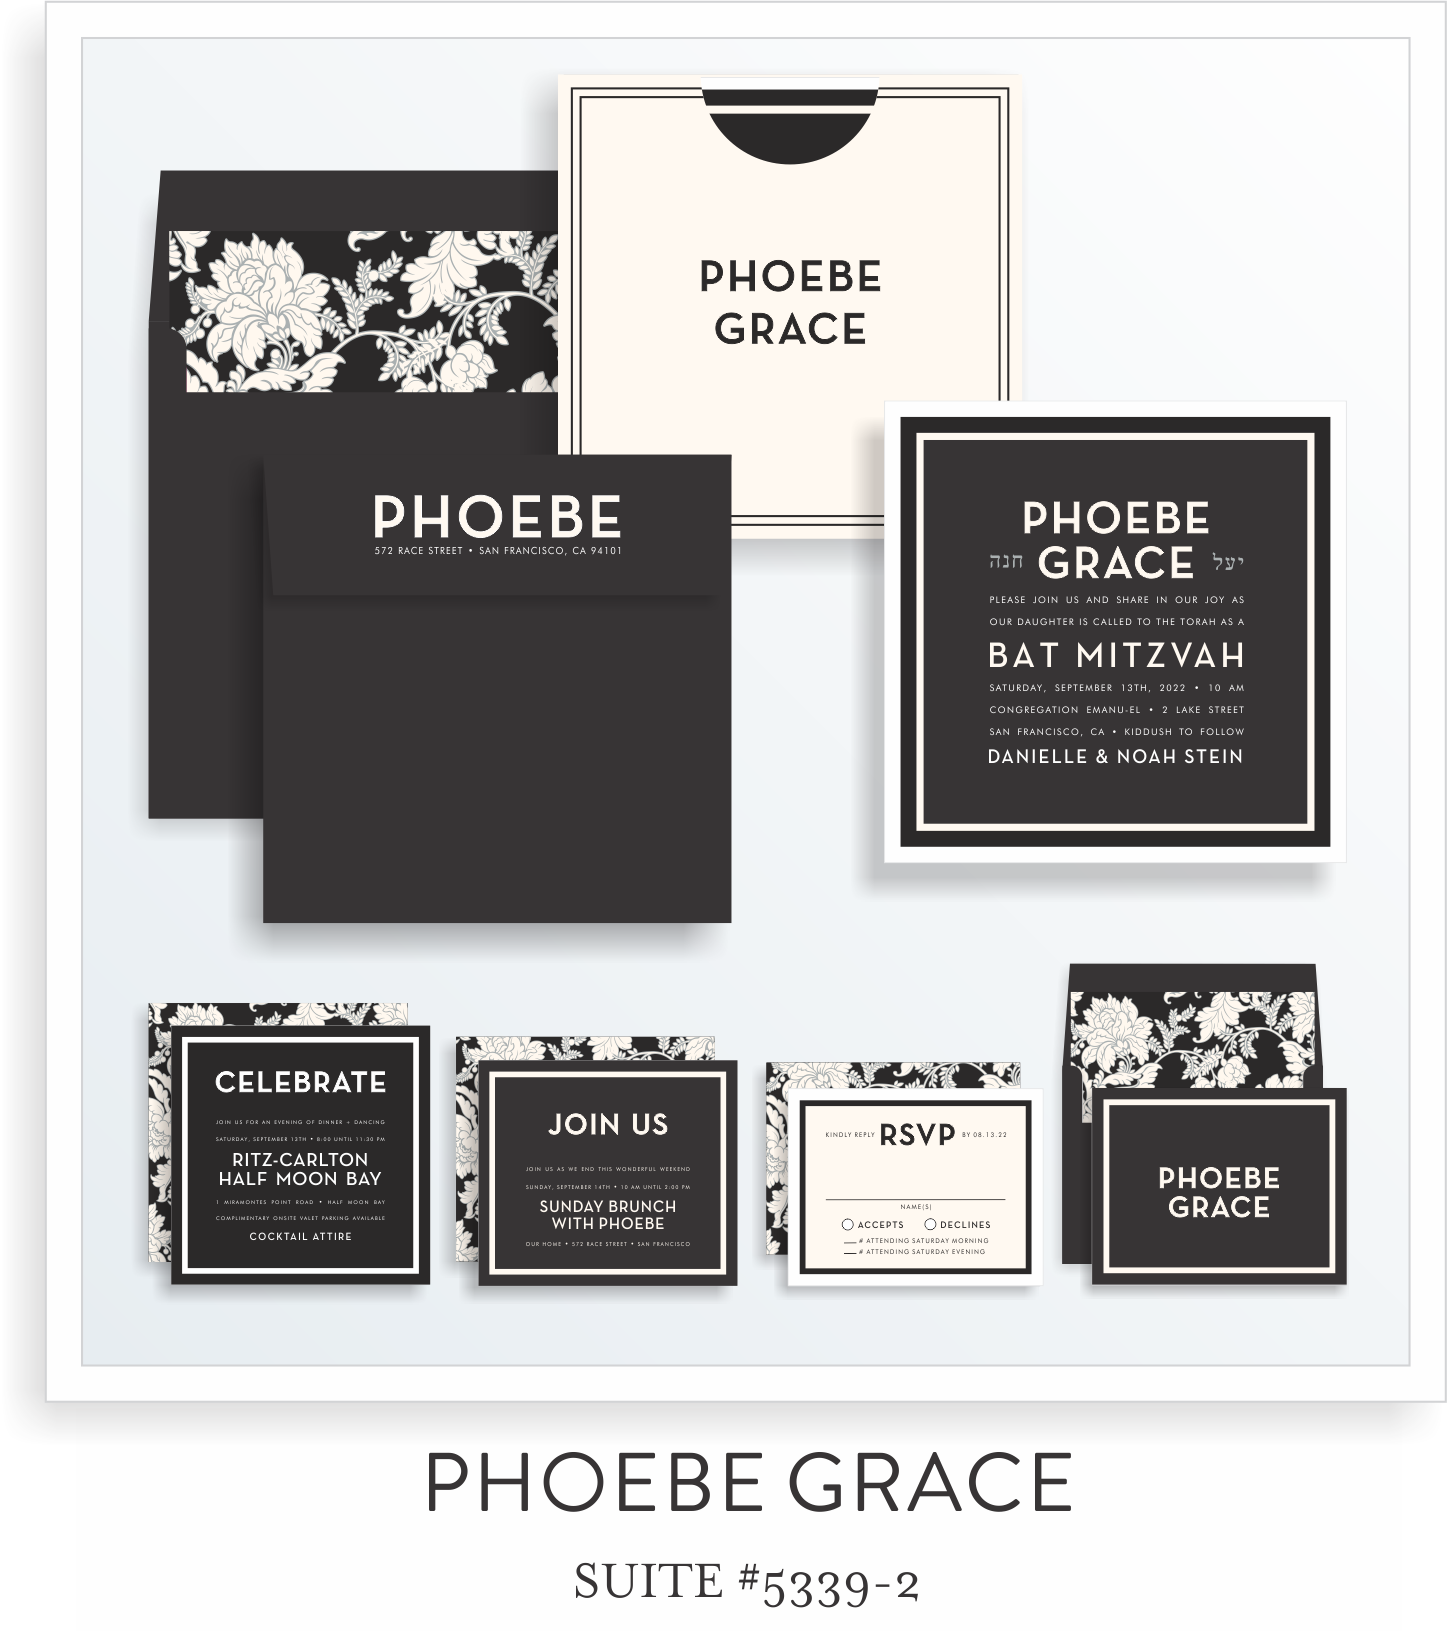 5339-2 PHOEBE GRACE SUITE THUMB.png